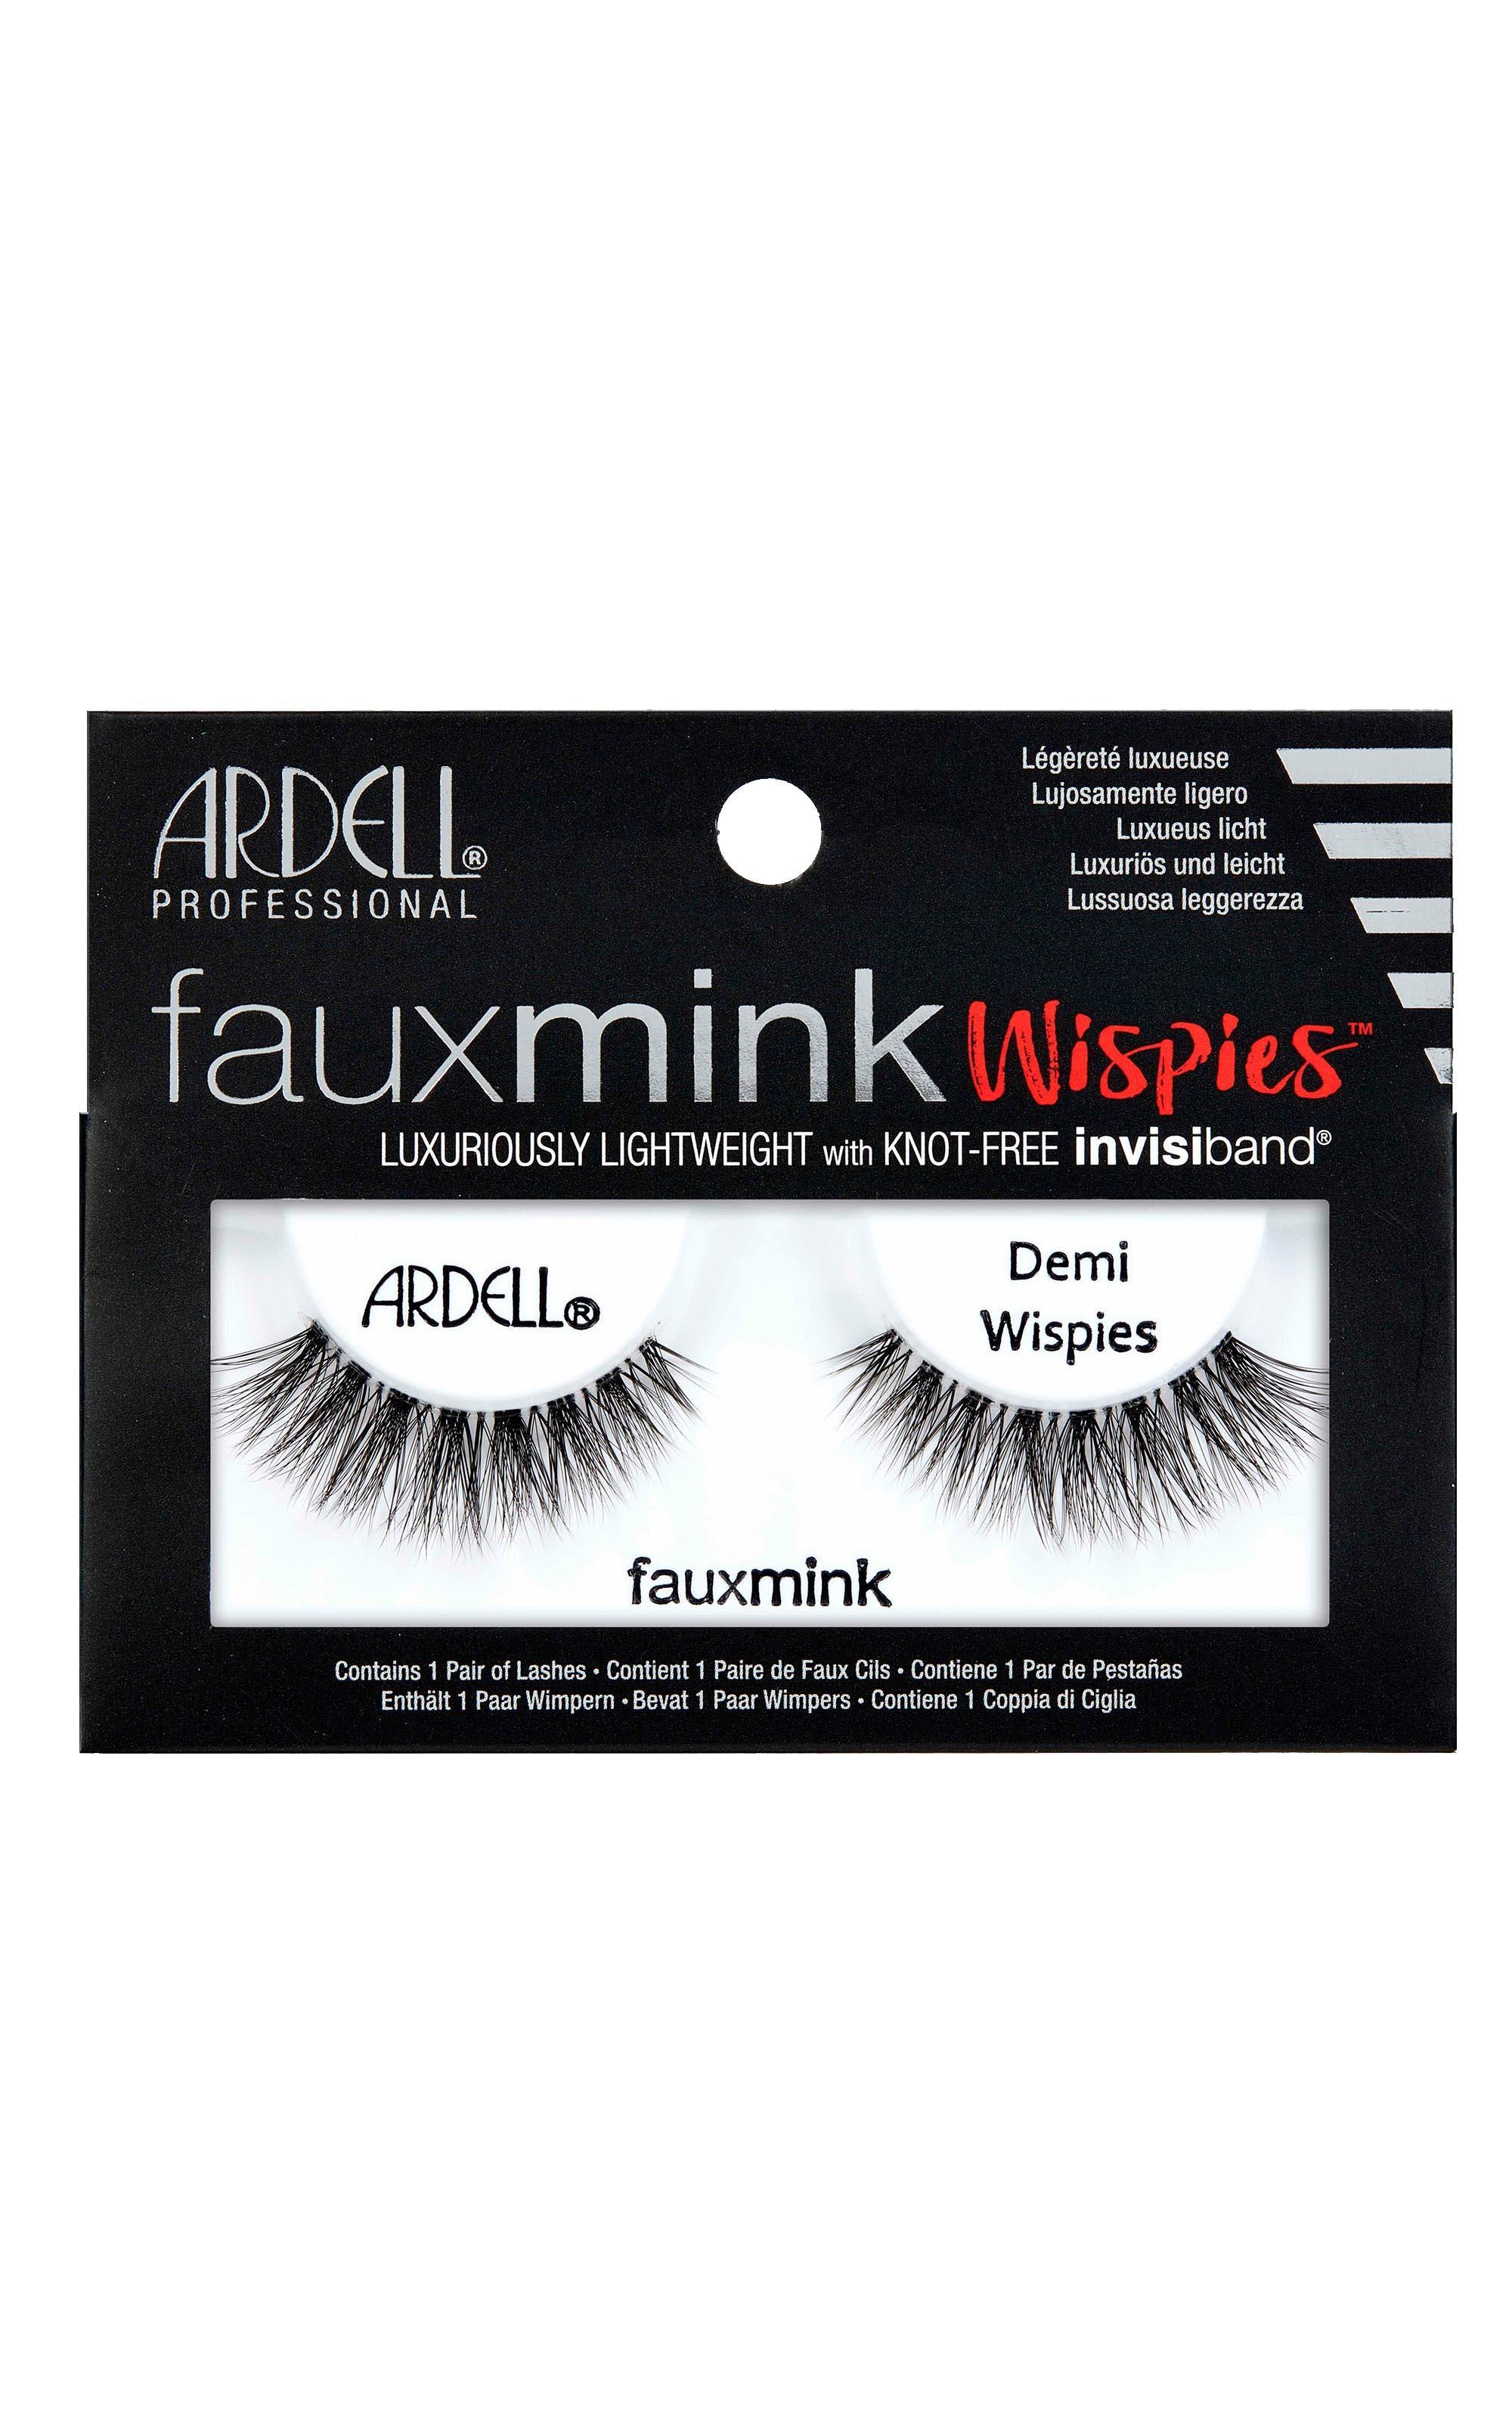 Ardell - Faux Mink Demi Wispies in Black, , hi-res image number null